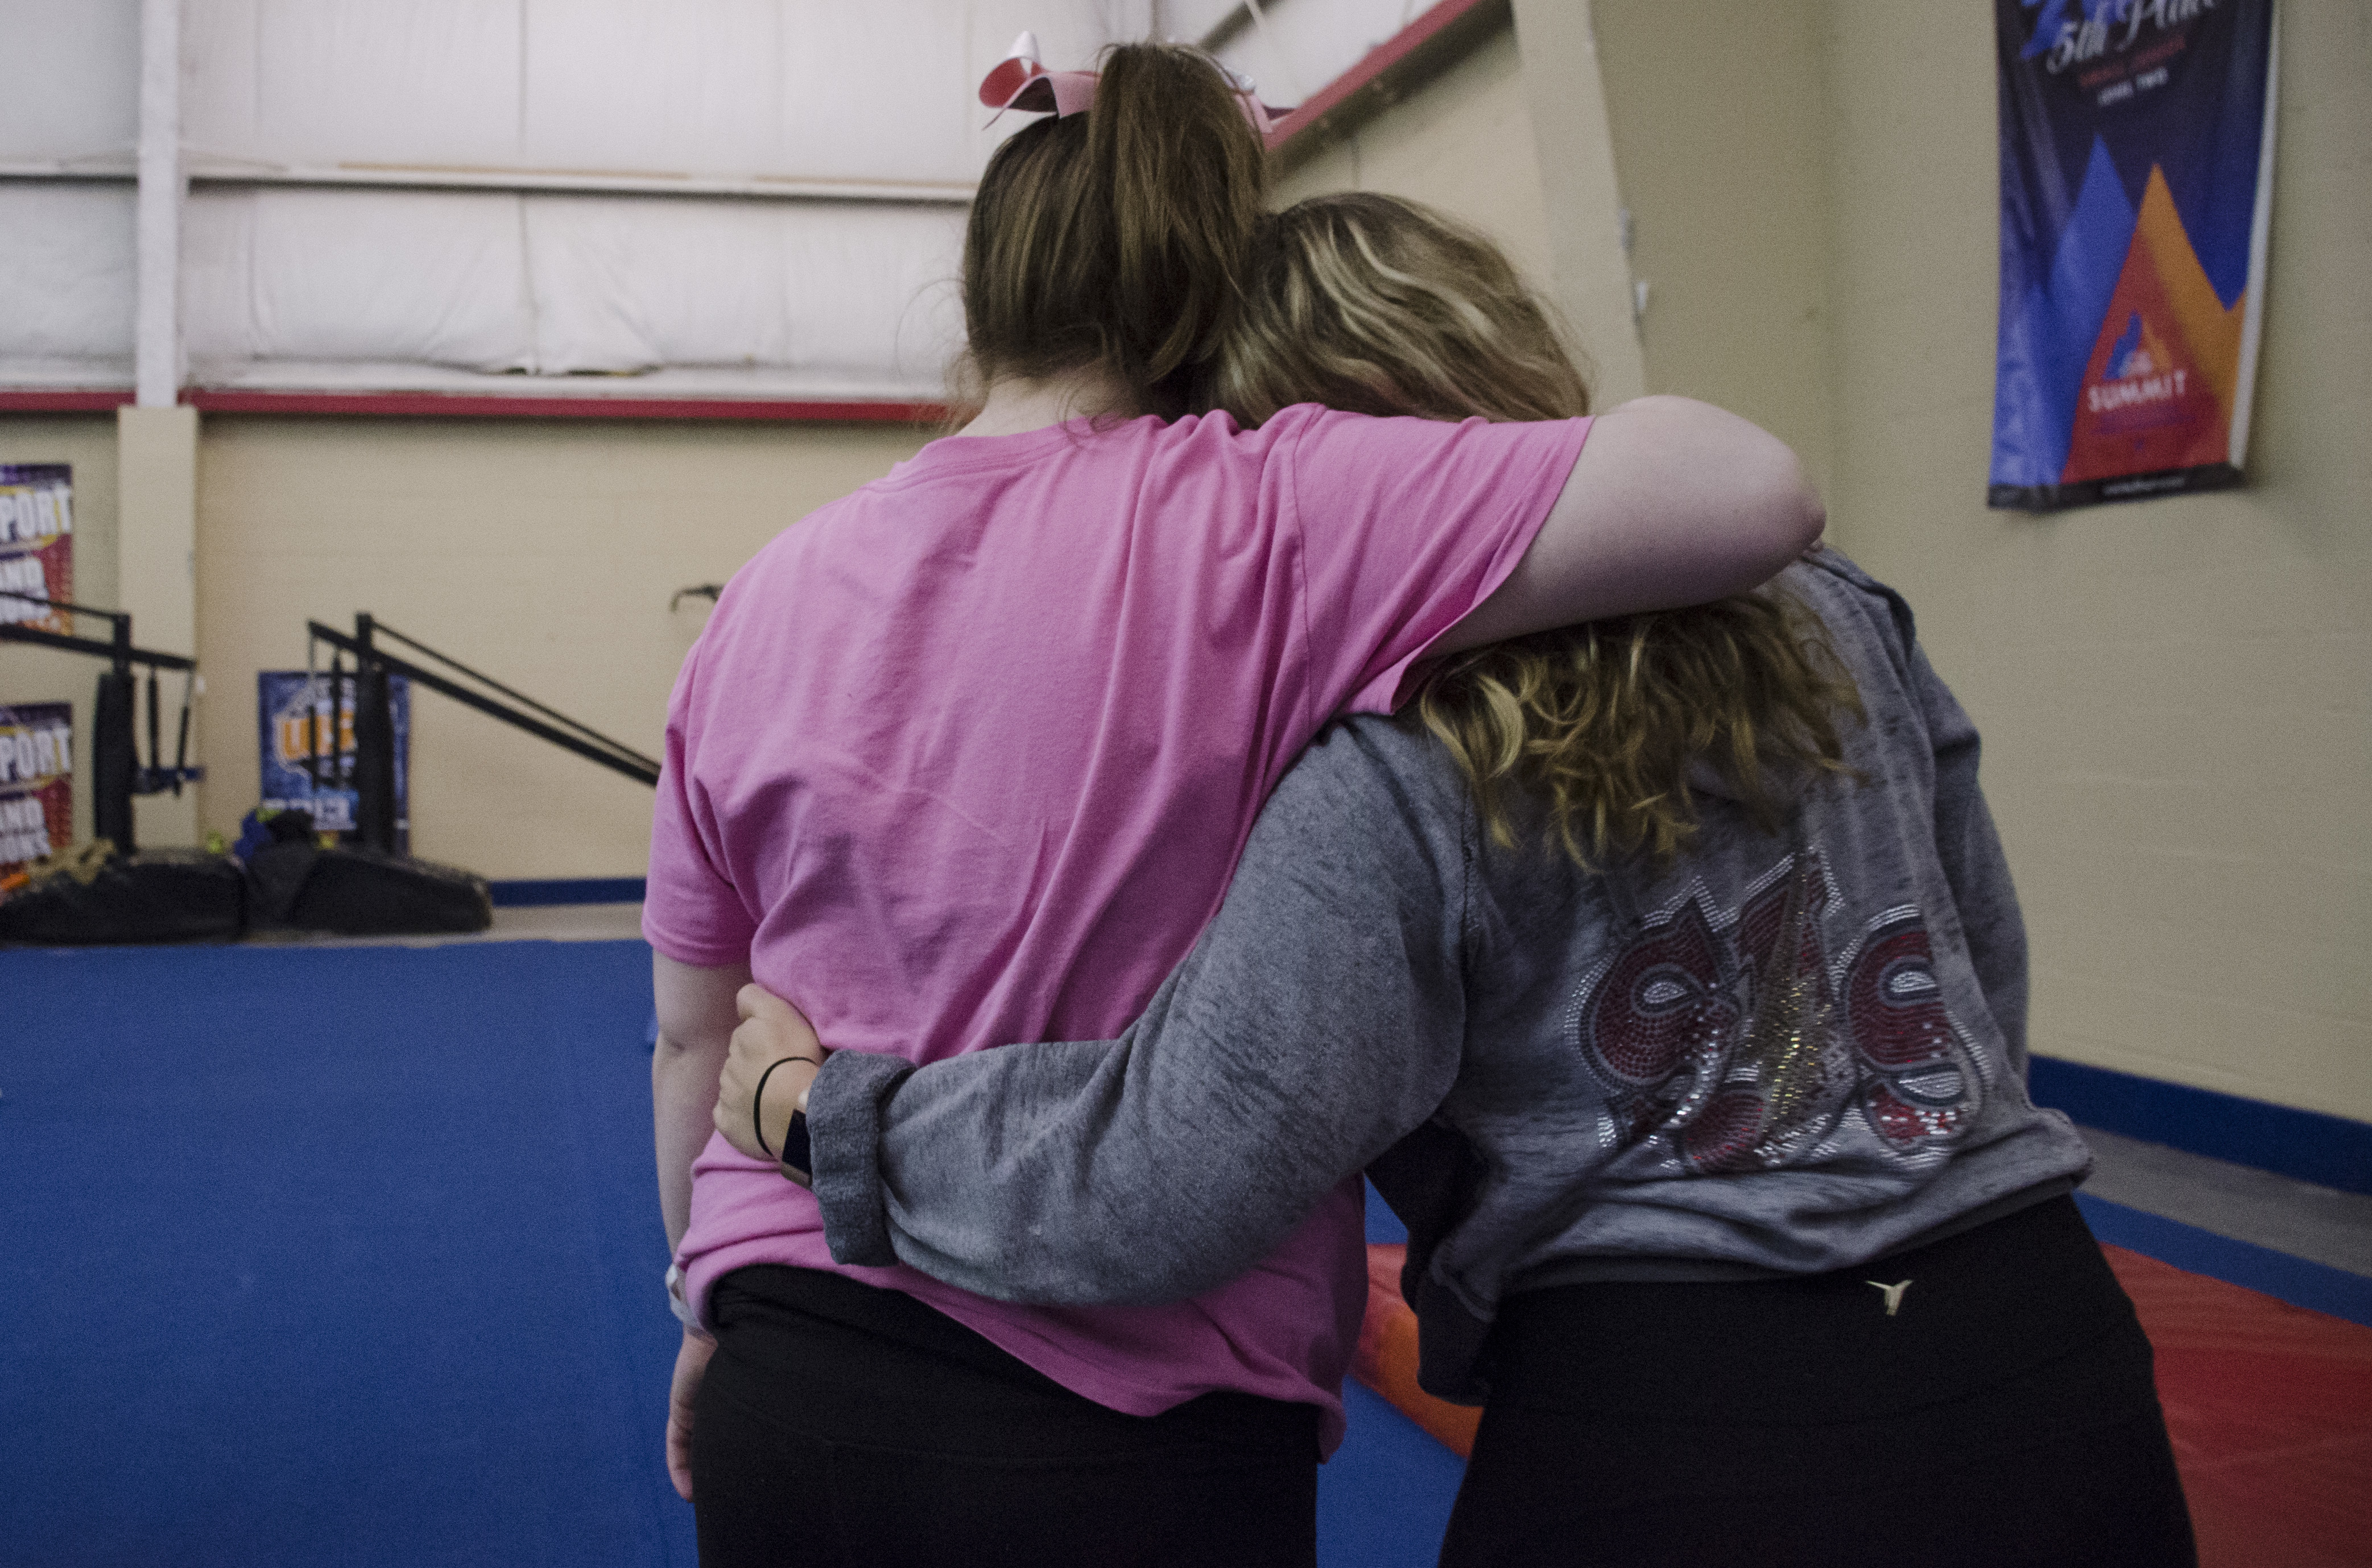 """Morgan Borner, left, hugs her coach, Michelle Nolan, right, during practice at the South Jersey Storm practice facility in Sewell, Pa., on Wednesday, March 14, 2018. The """"Twisters"""" are one of only 5 special needs teams across the country to win a bid to the United States All-Star Federation 2018 Cheerleading and Dance World Championships in Orlando. ( CAMERON HART / For the Inquirer )"""